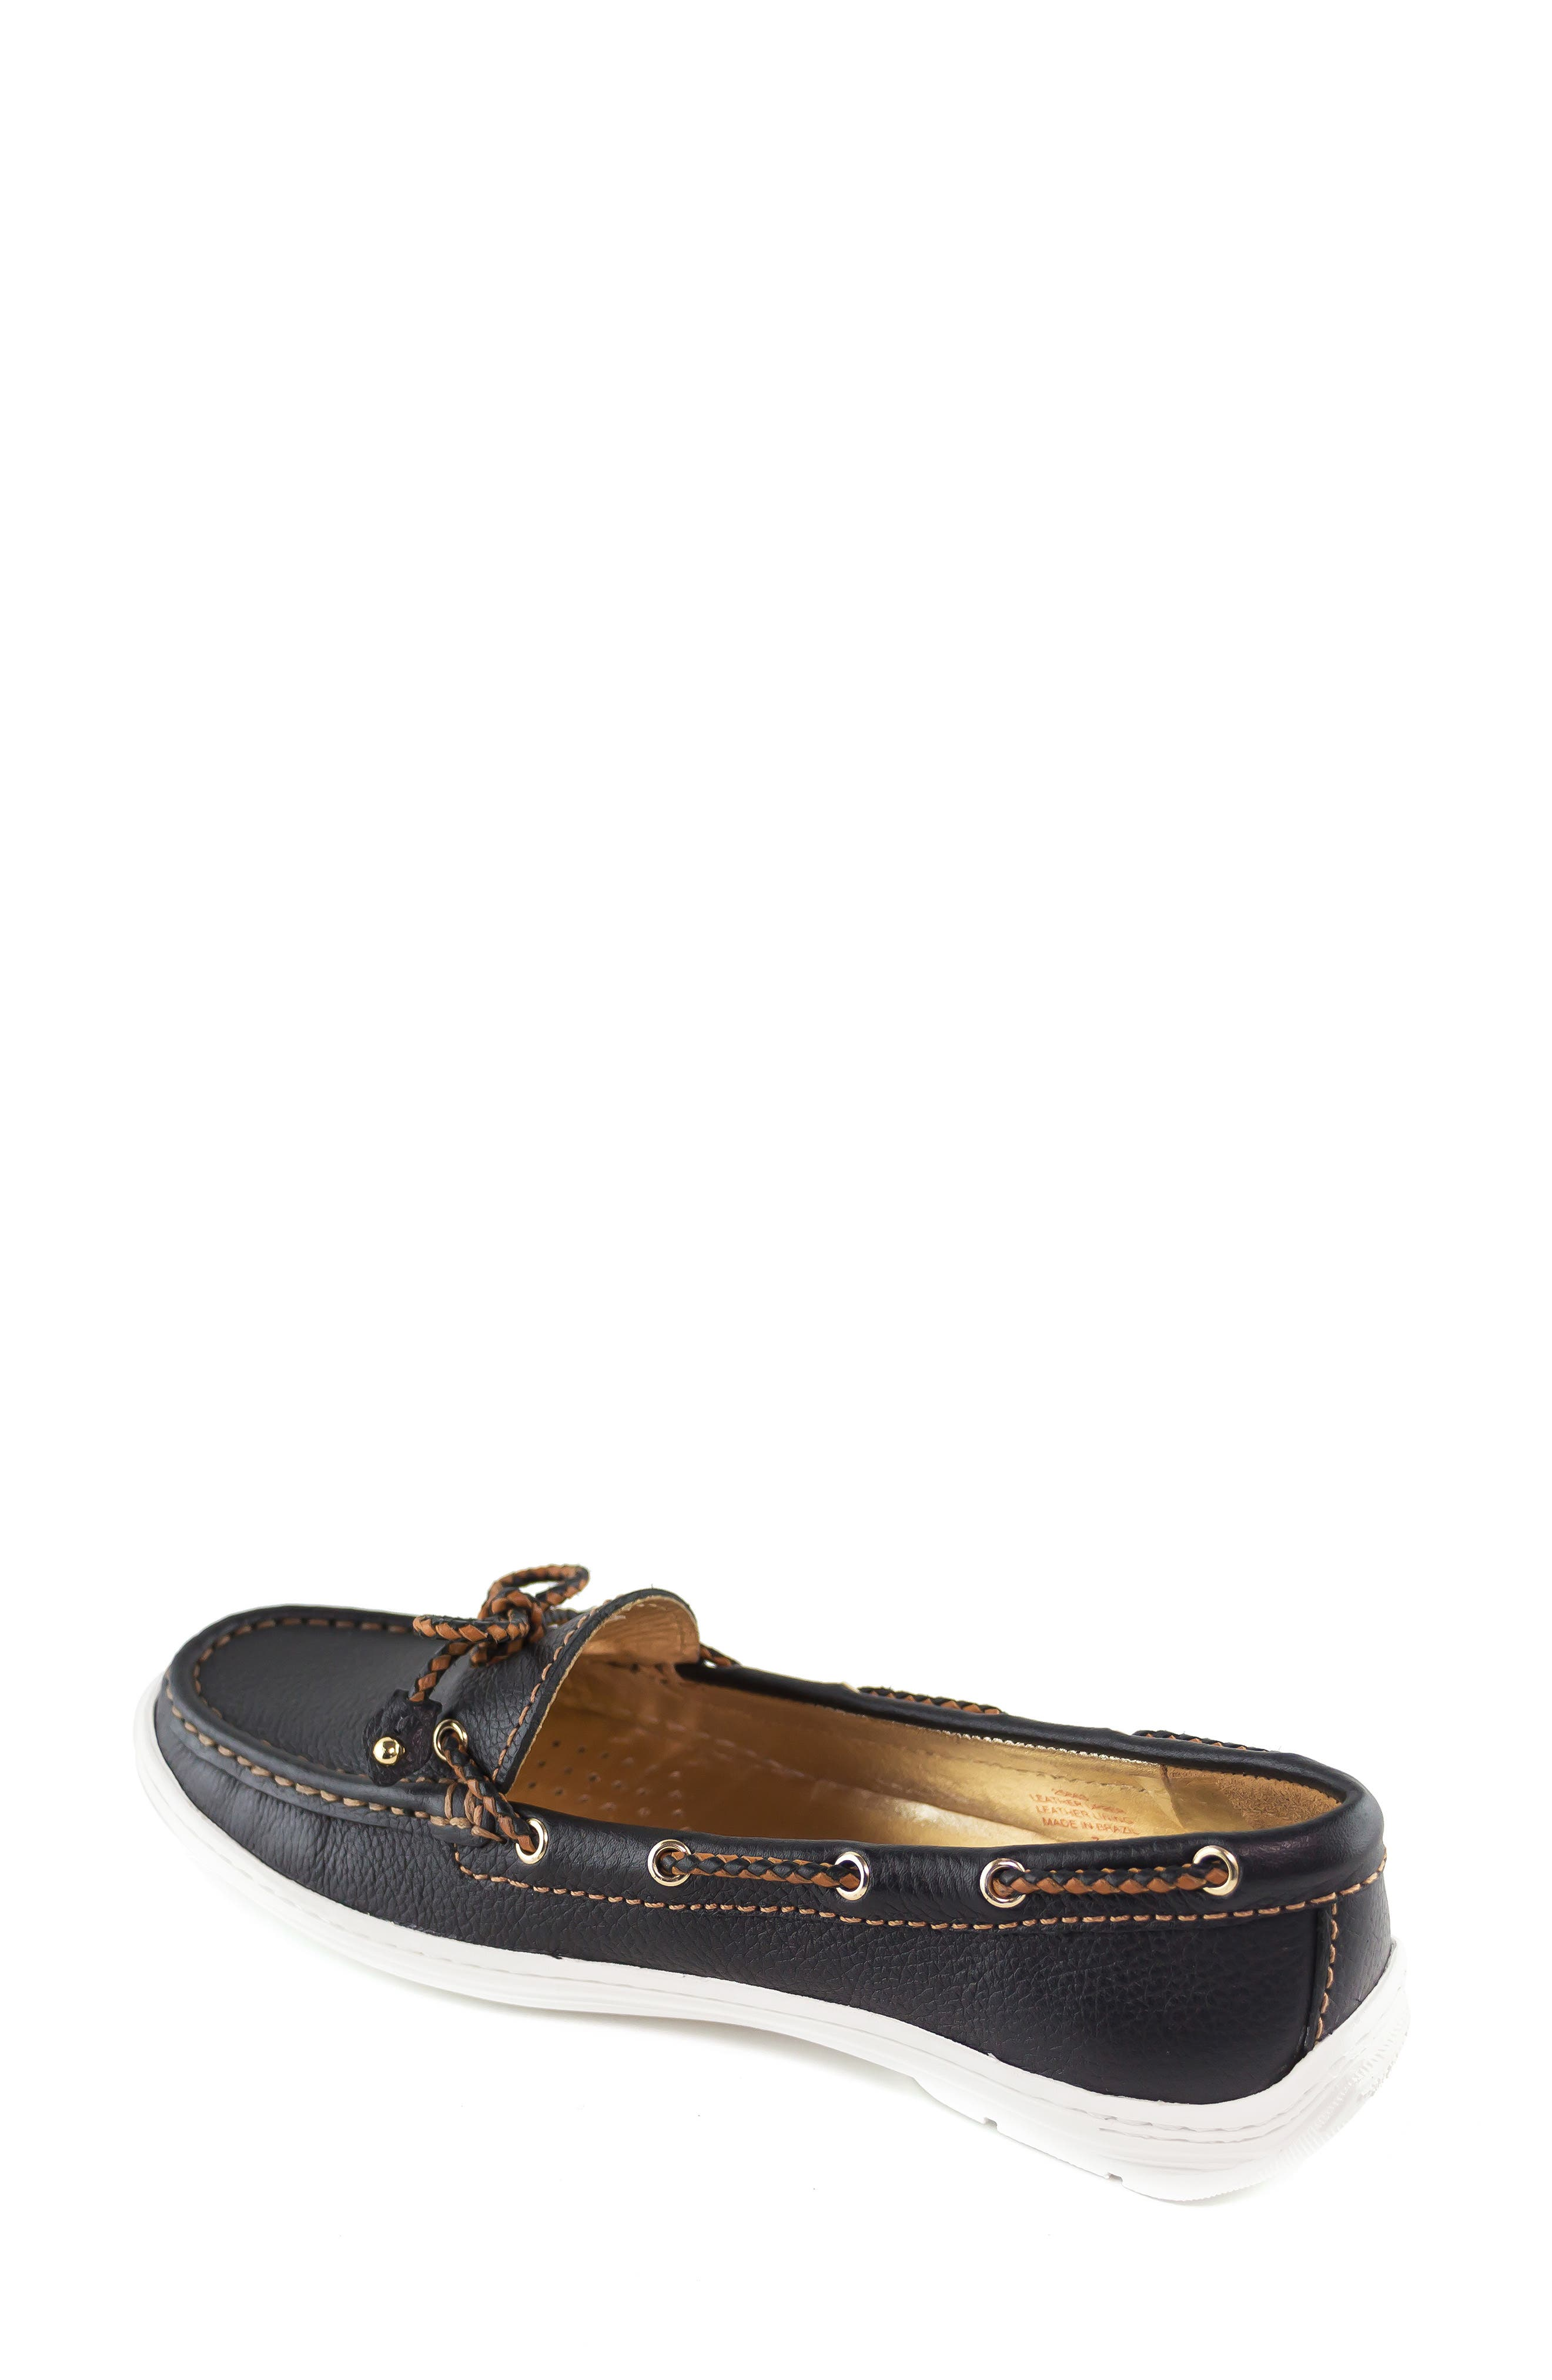 MARC JOSEPH NEW YORK, Pacific Loafer, Alternate thumbnail 2, color, BLACK LEATHER